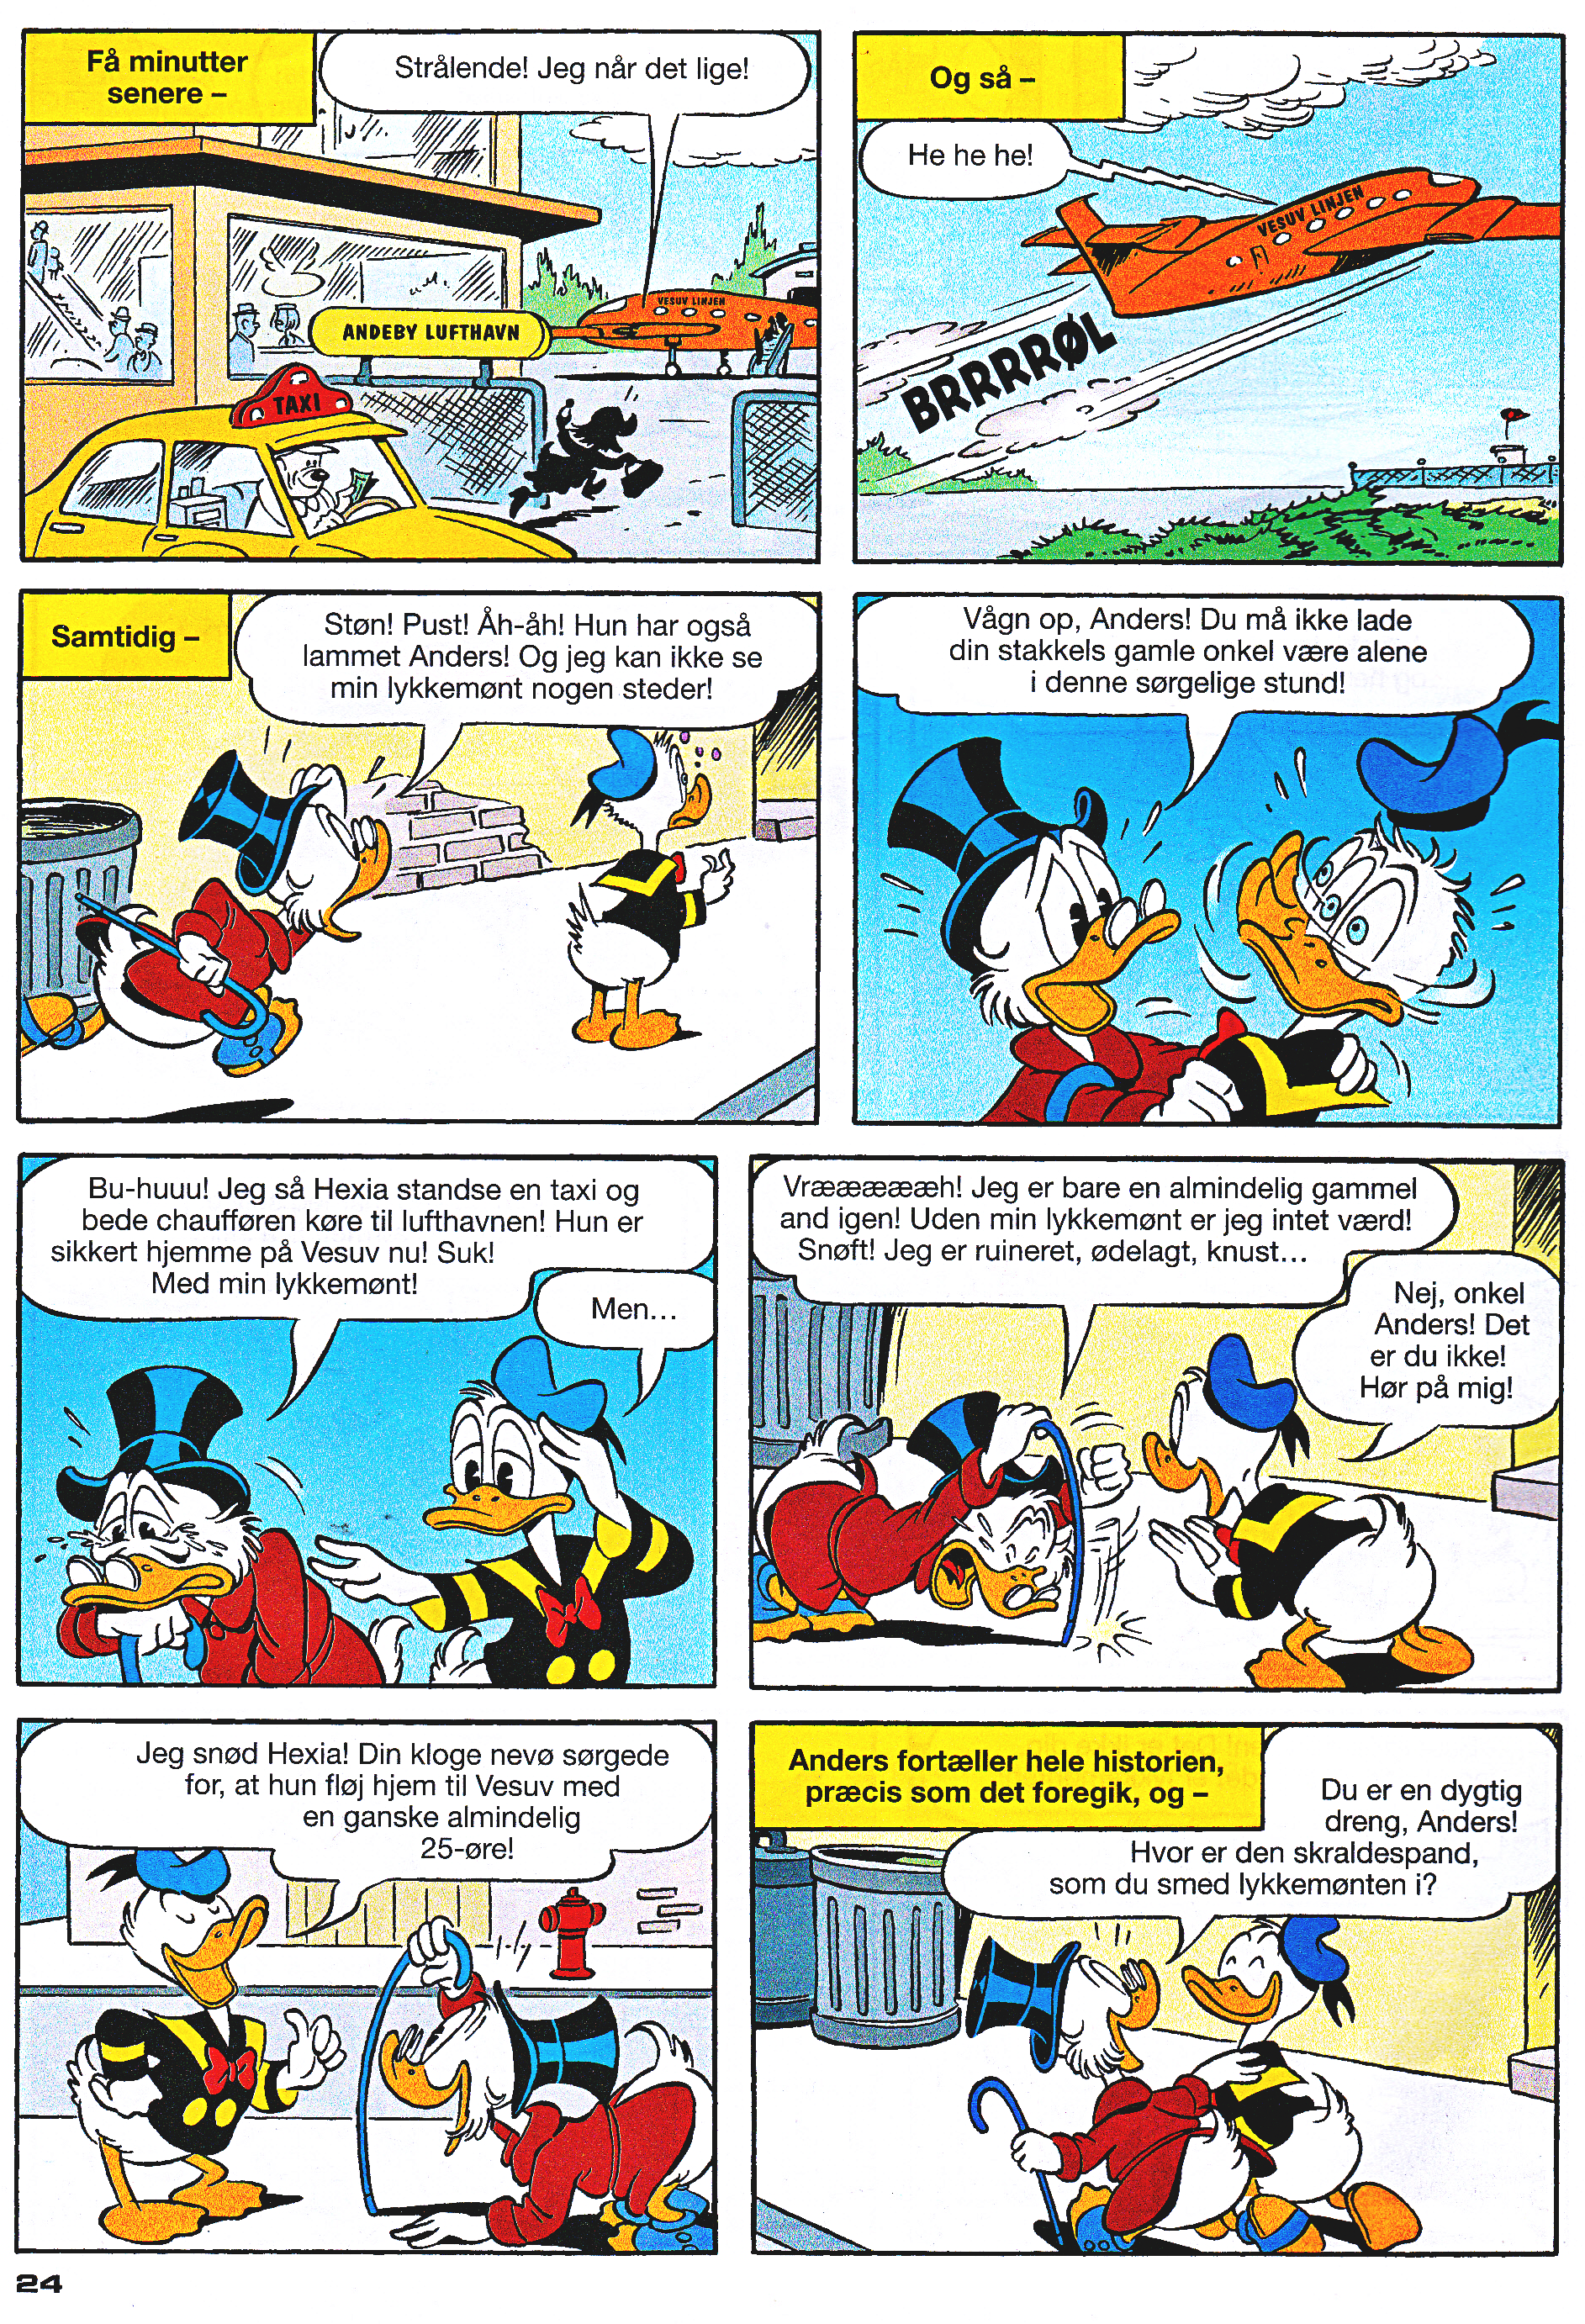 Walt Disney Comics - Donald Duck: Magica Outwitted by Donald (Danish Edition)